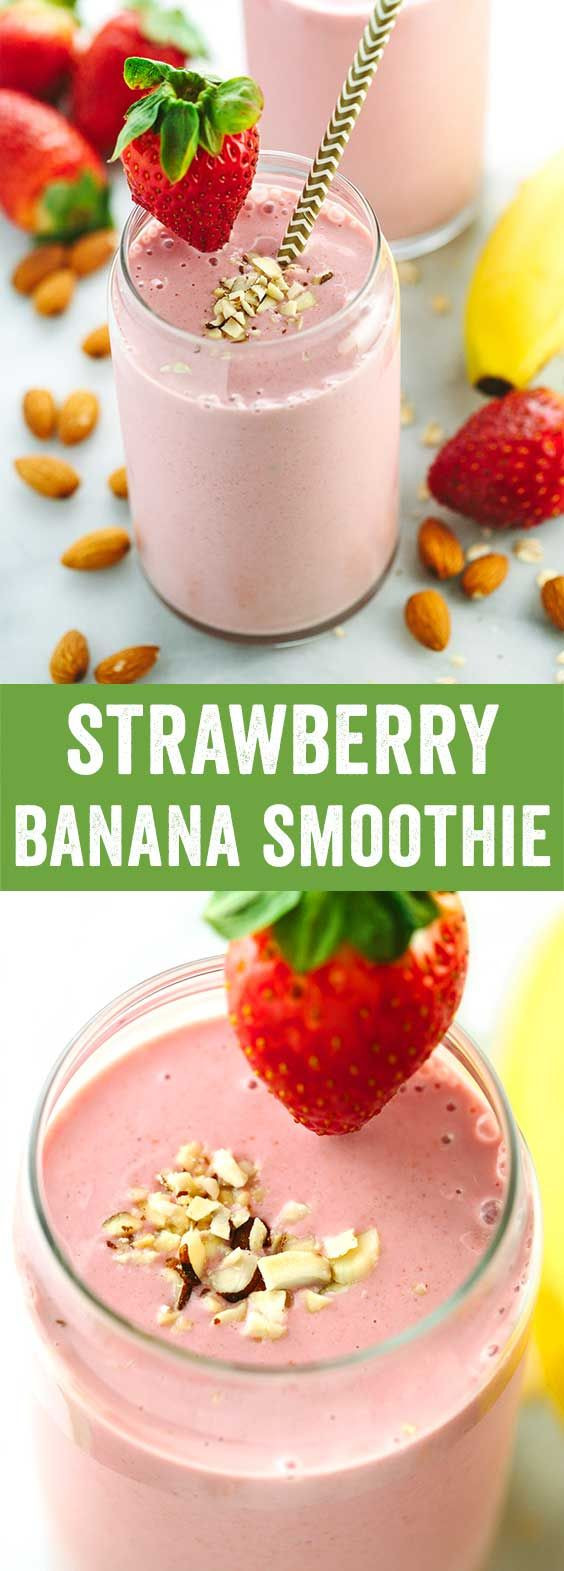 Healthy Smoothie Recipes With Yogurt  42 best Cooking Smoothies images on Pinterest